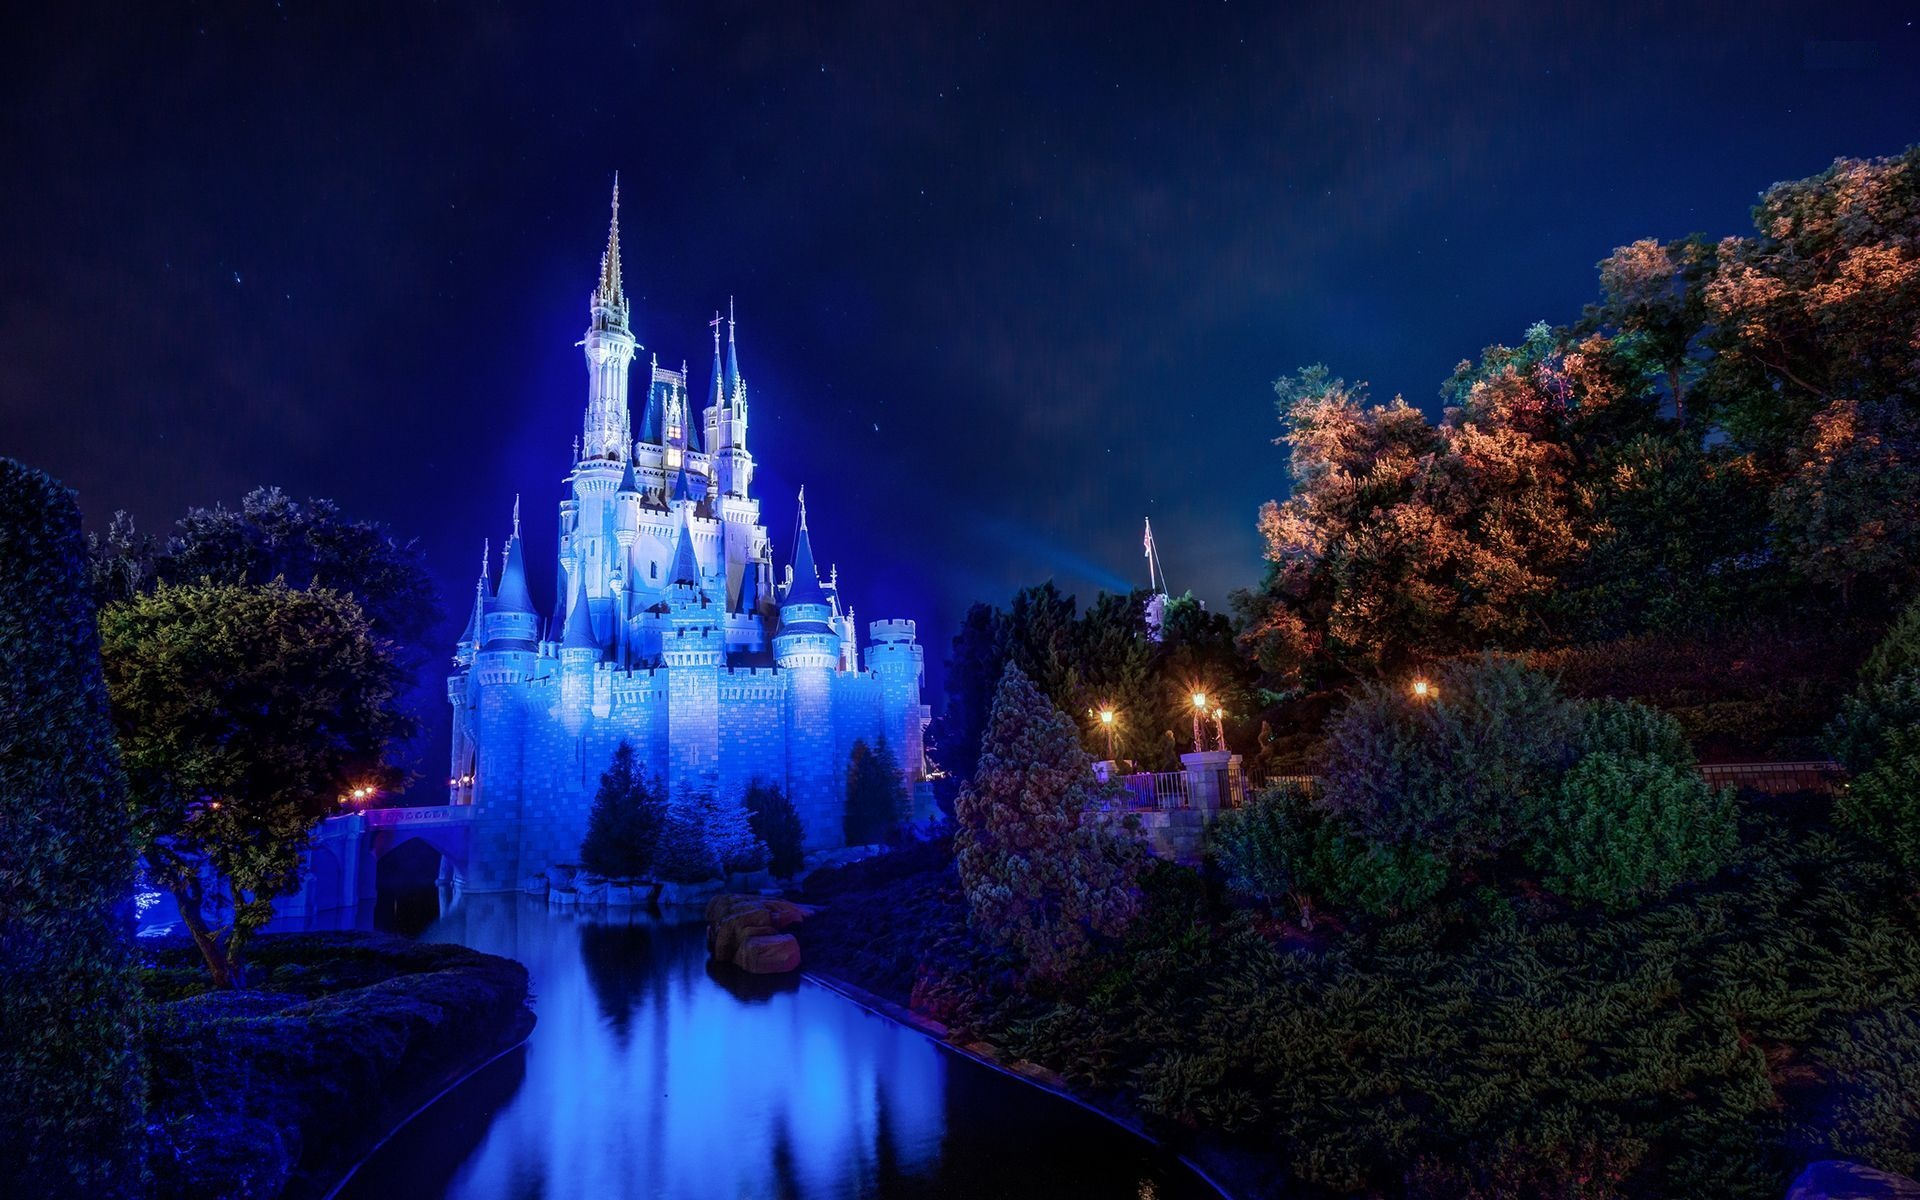 Disney world background image hd desktop wallpaper wide 1920x1200